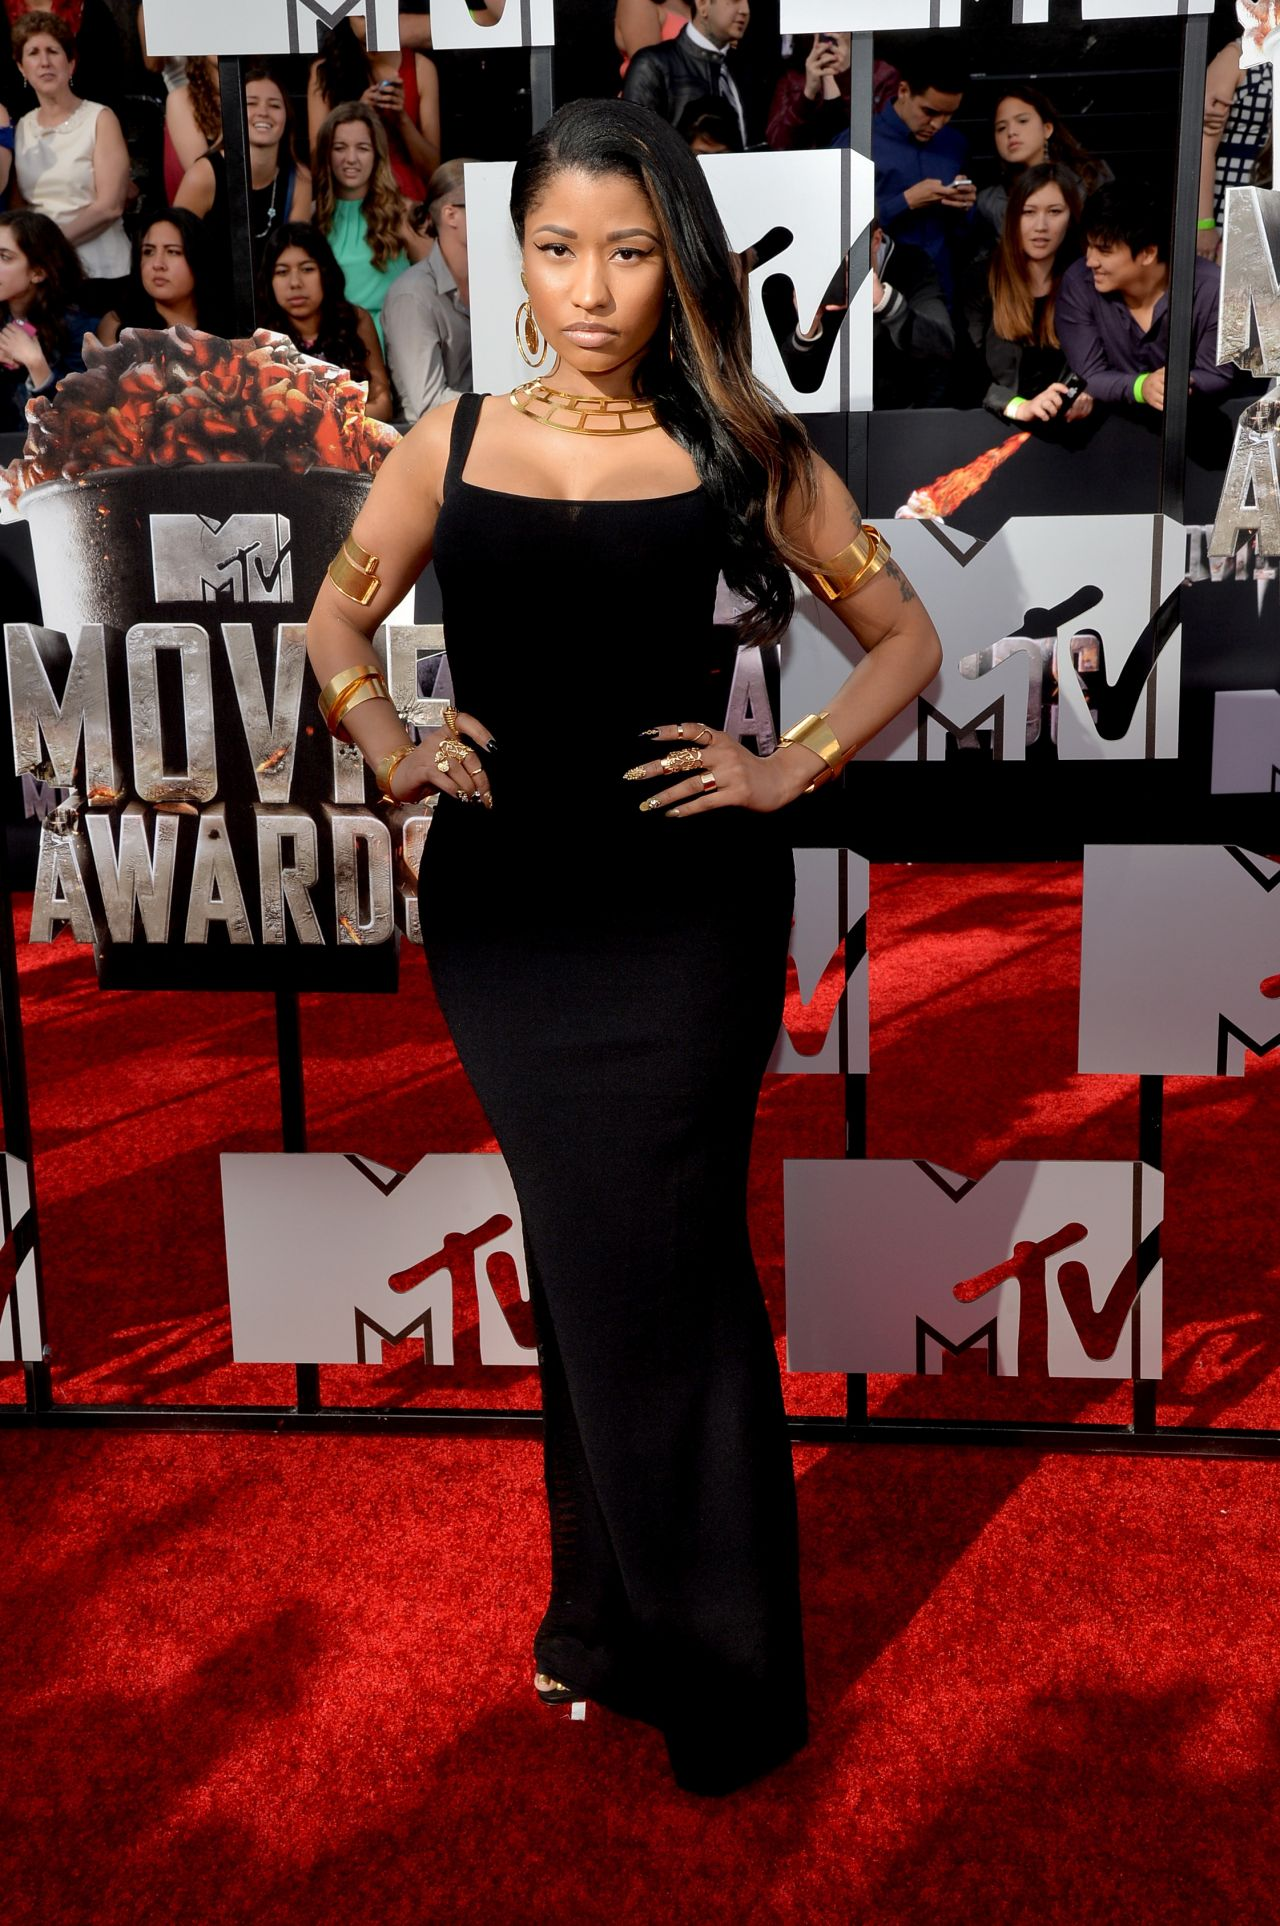 Nicki Minaj Wearing Alexander McQueen Dress - 2014 MTV Movie Awards